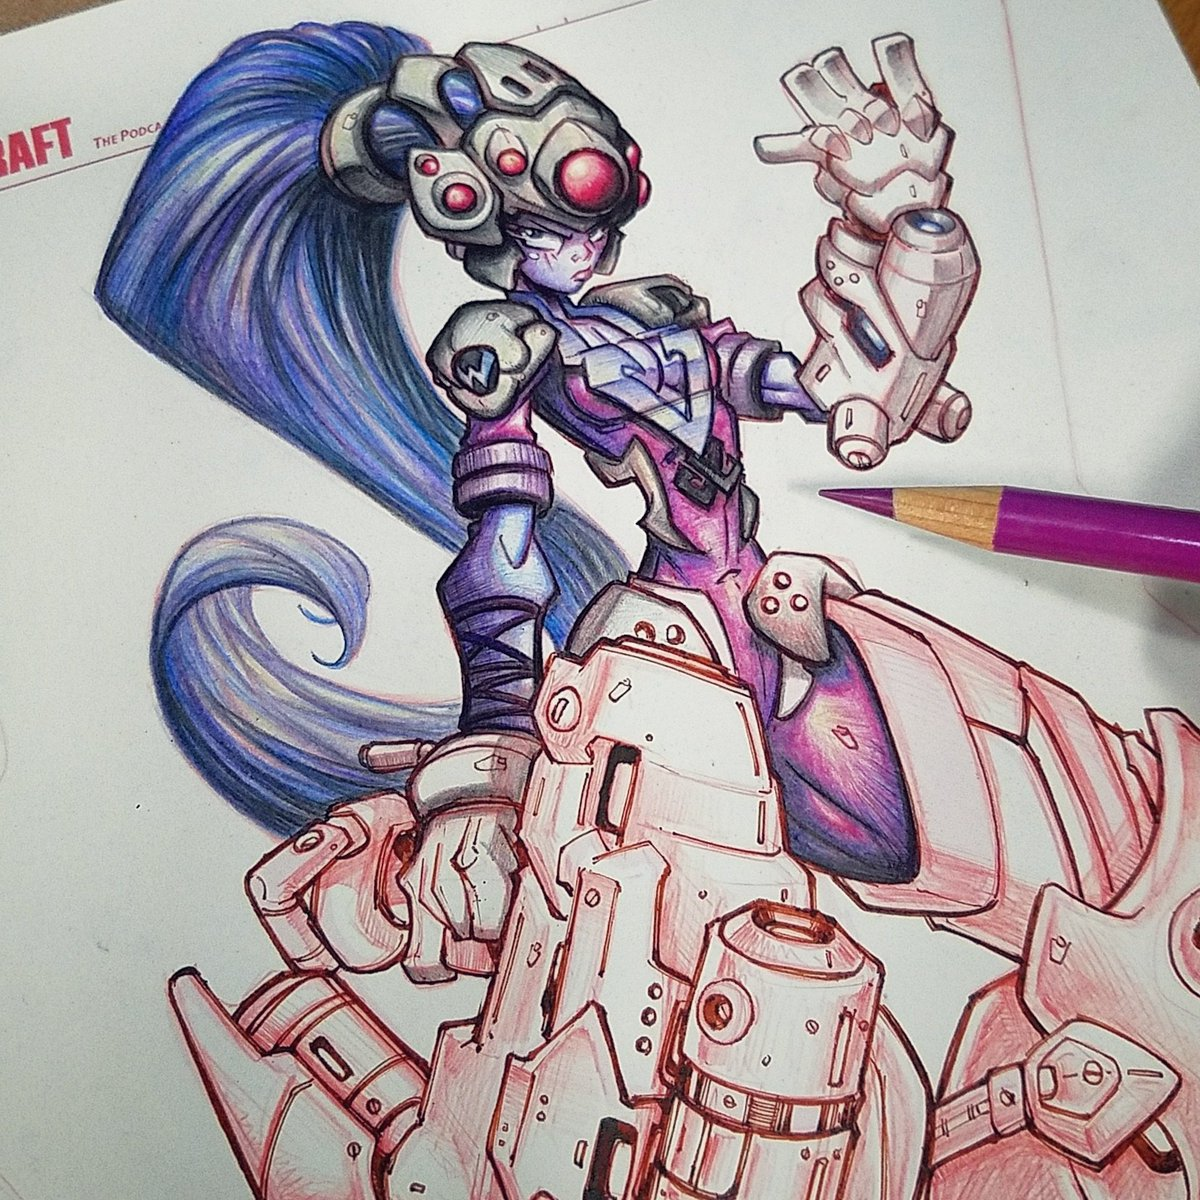 Widowmaker Commish Dev:  Color pencil&#39;n... #overwatch #widowmaker #colorpencil #sketch #pencil  #commission #commissions<br>http://pic.twitter.com/dIgFTdByQE